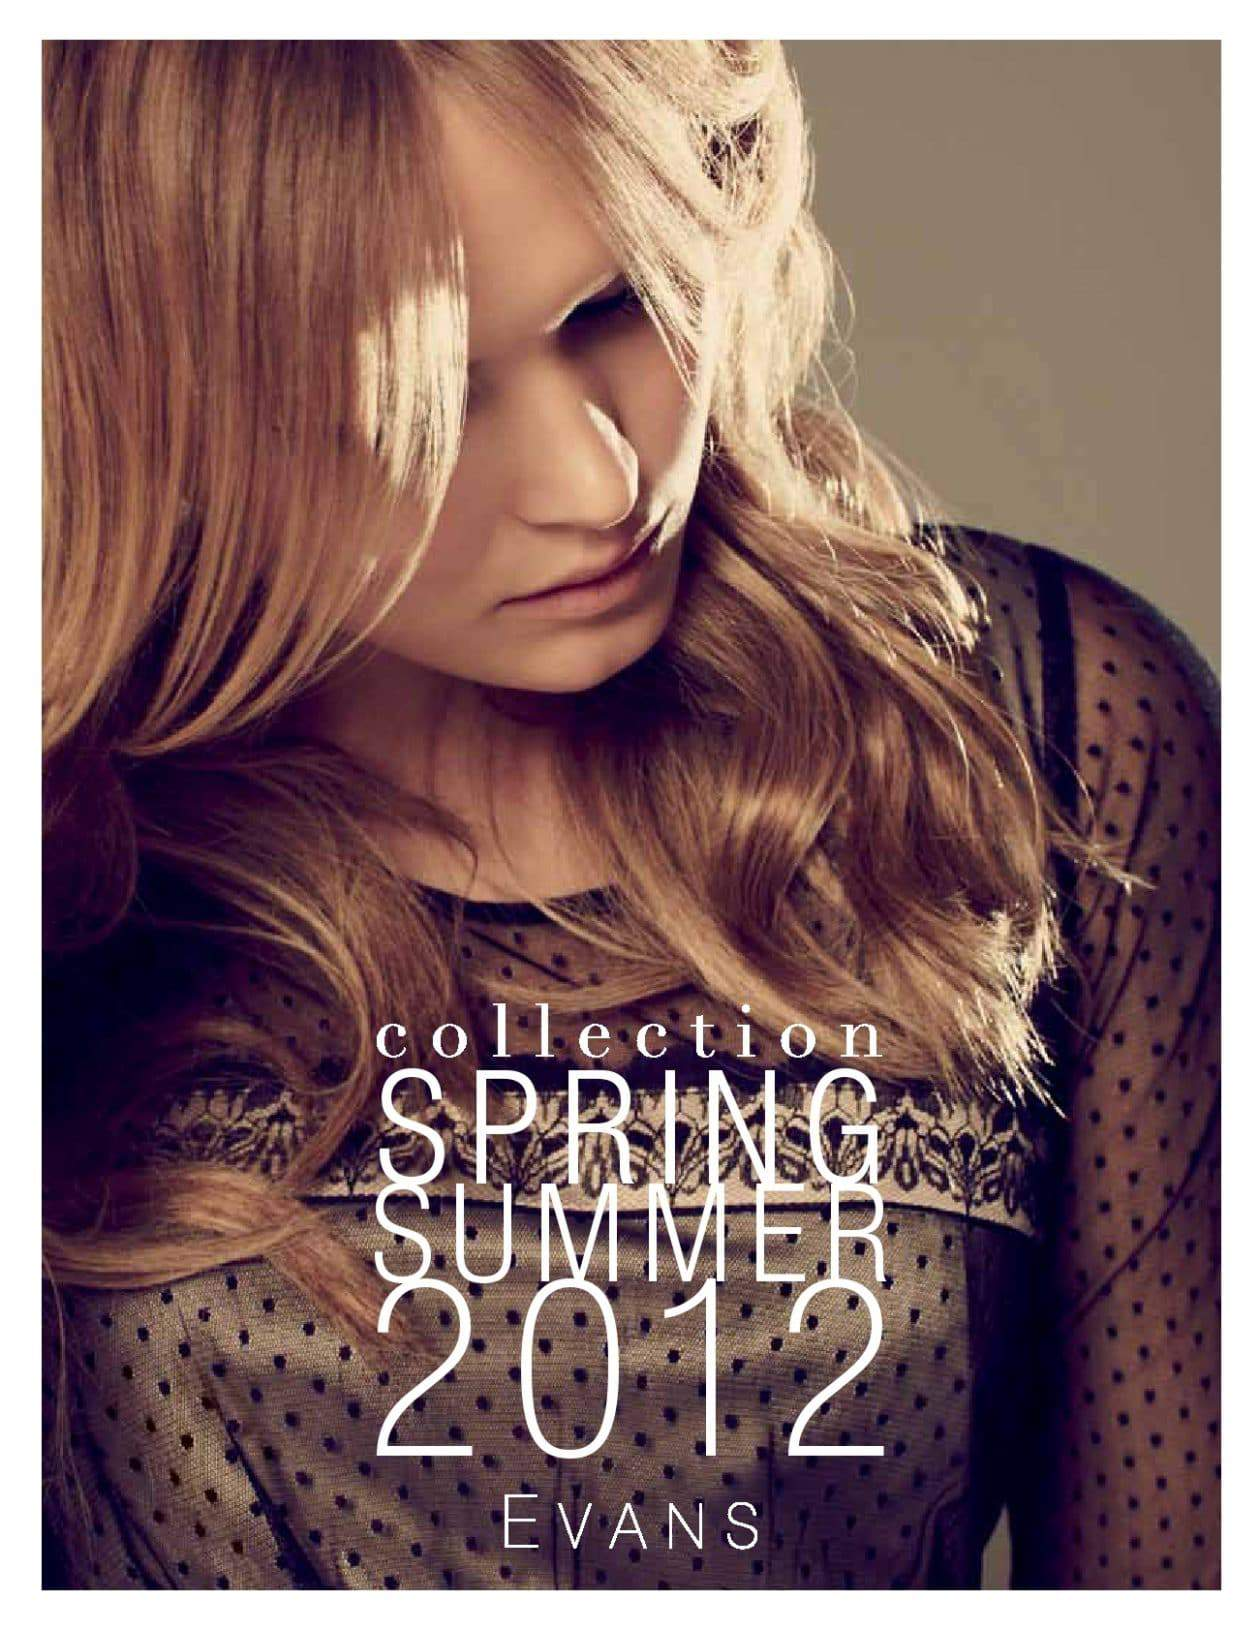 The S/S Evans Collection Launches in the US on Saturday-Take a Peek!